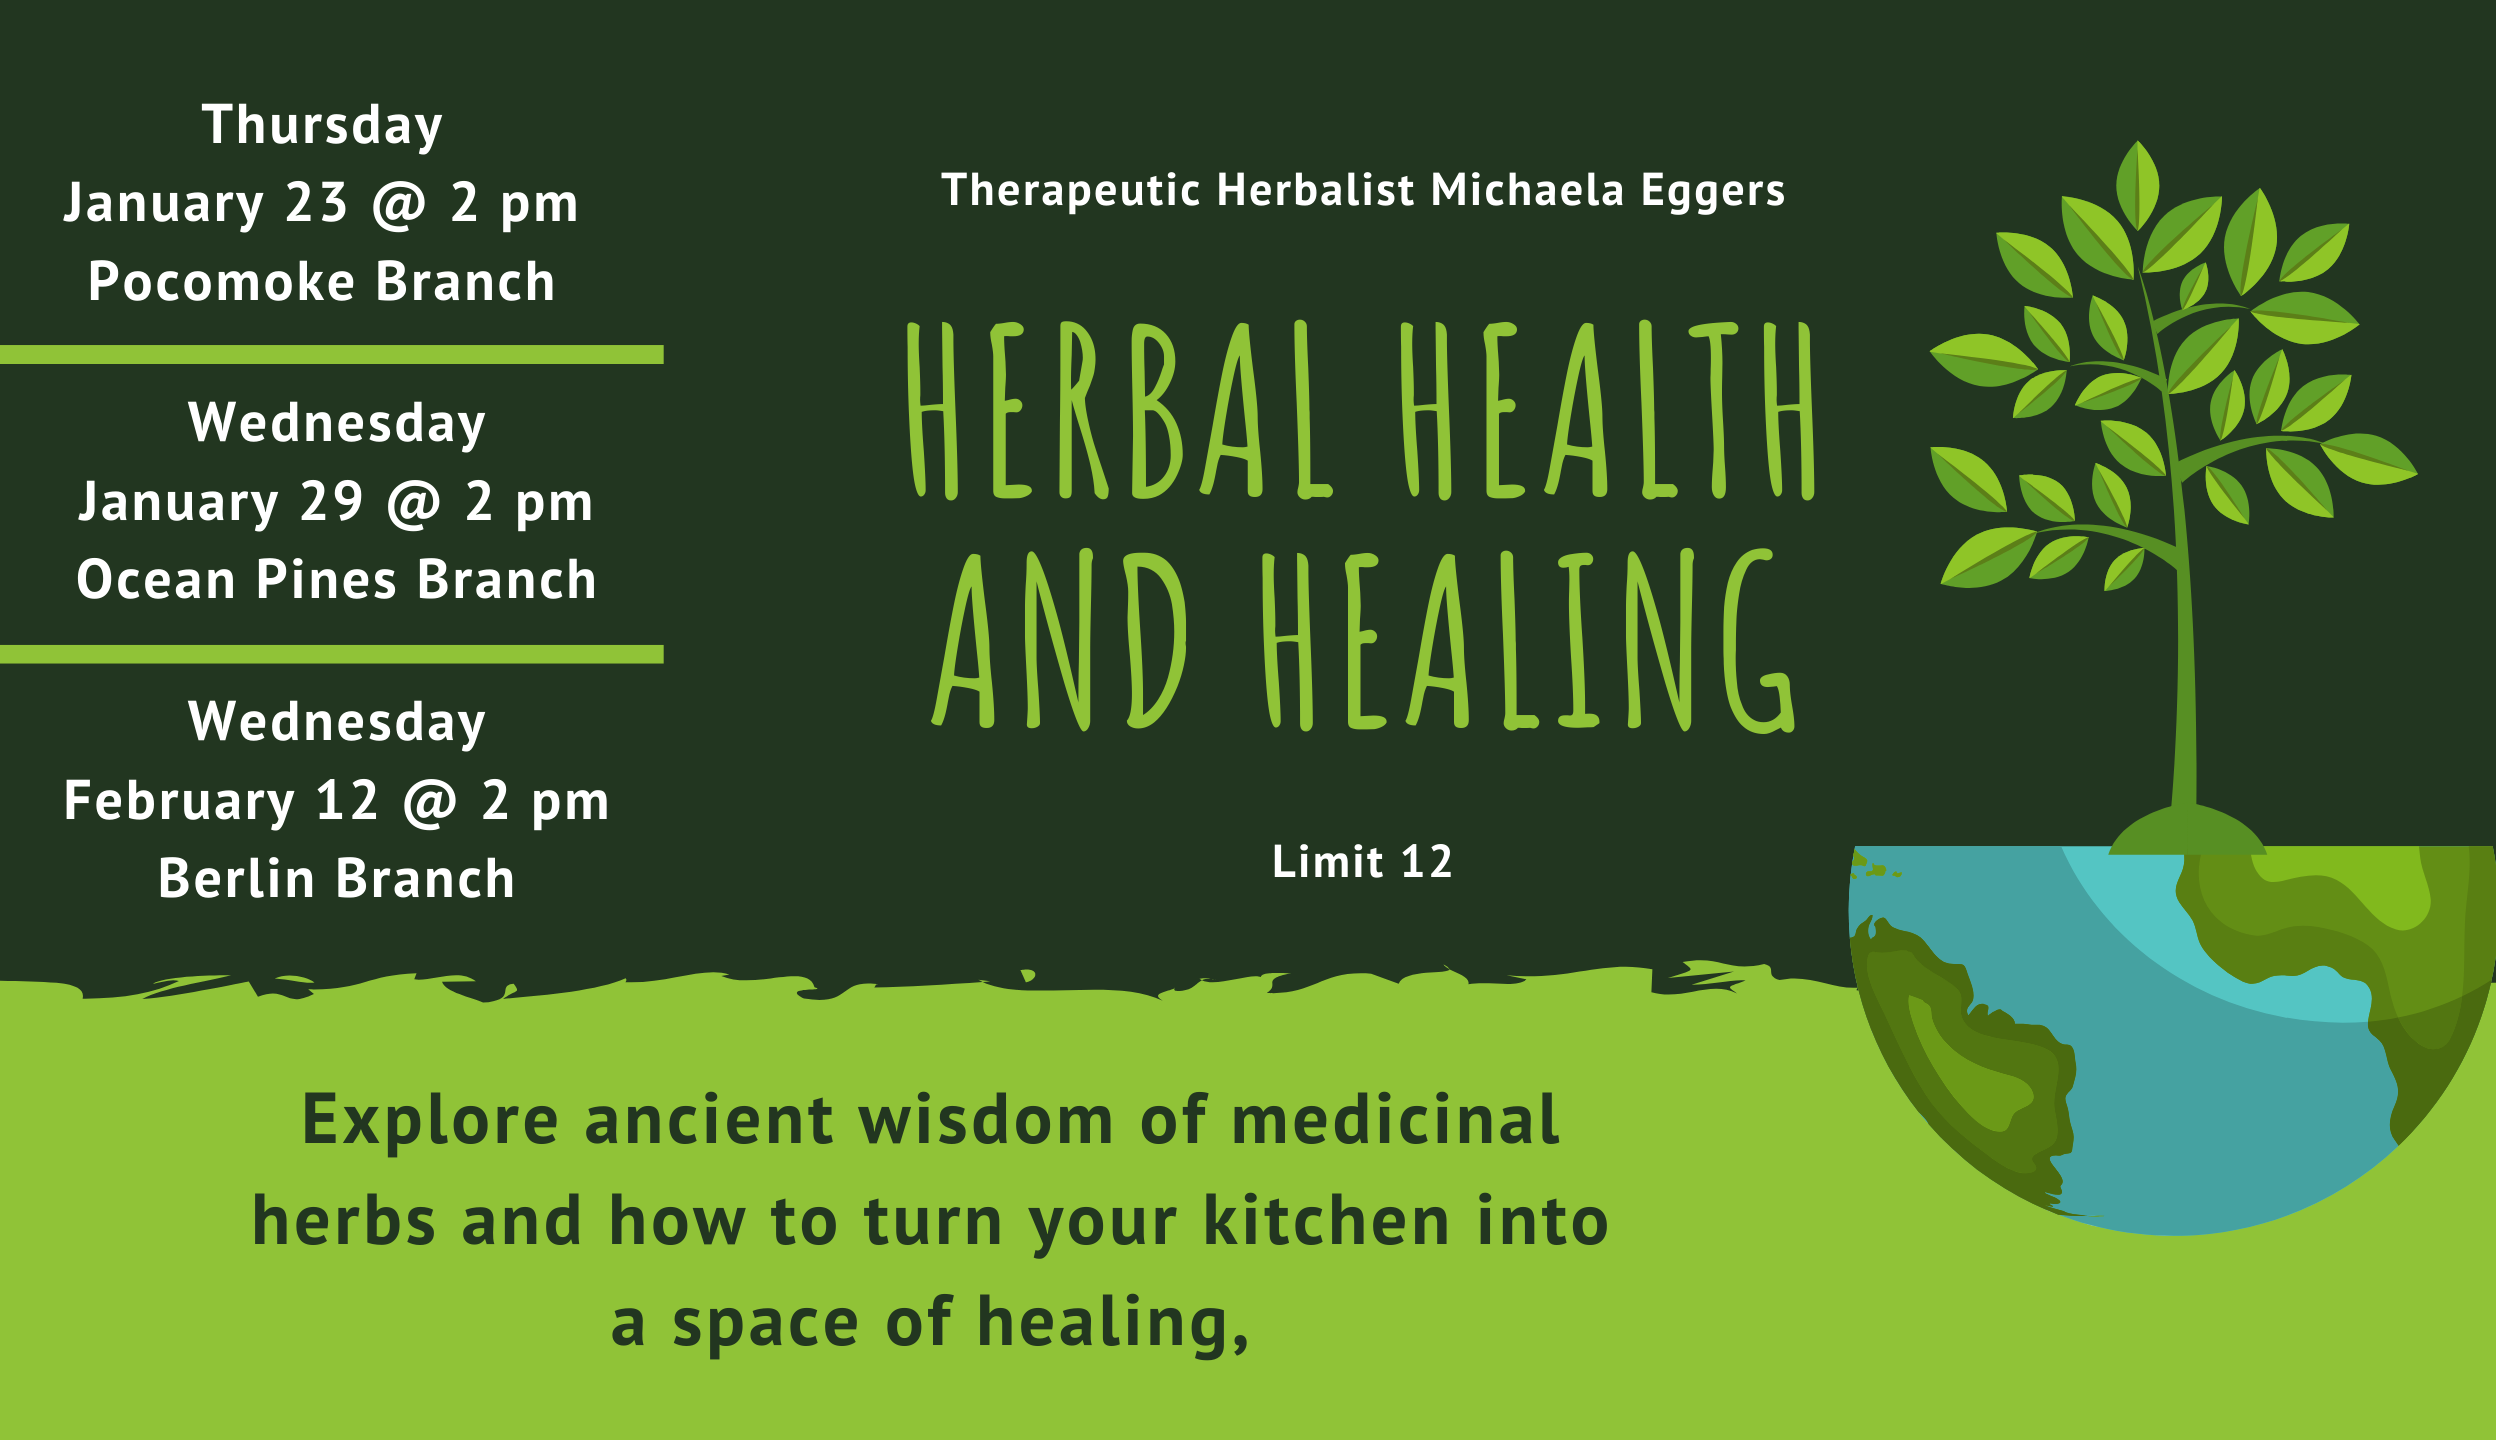 What are herbal health products? Are they safe to use?